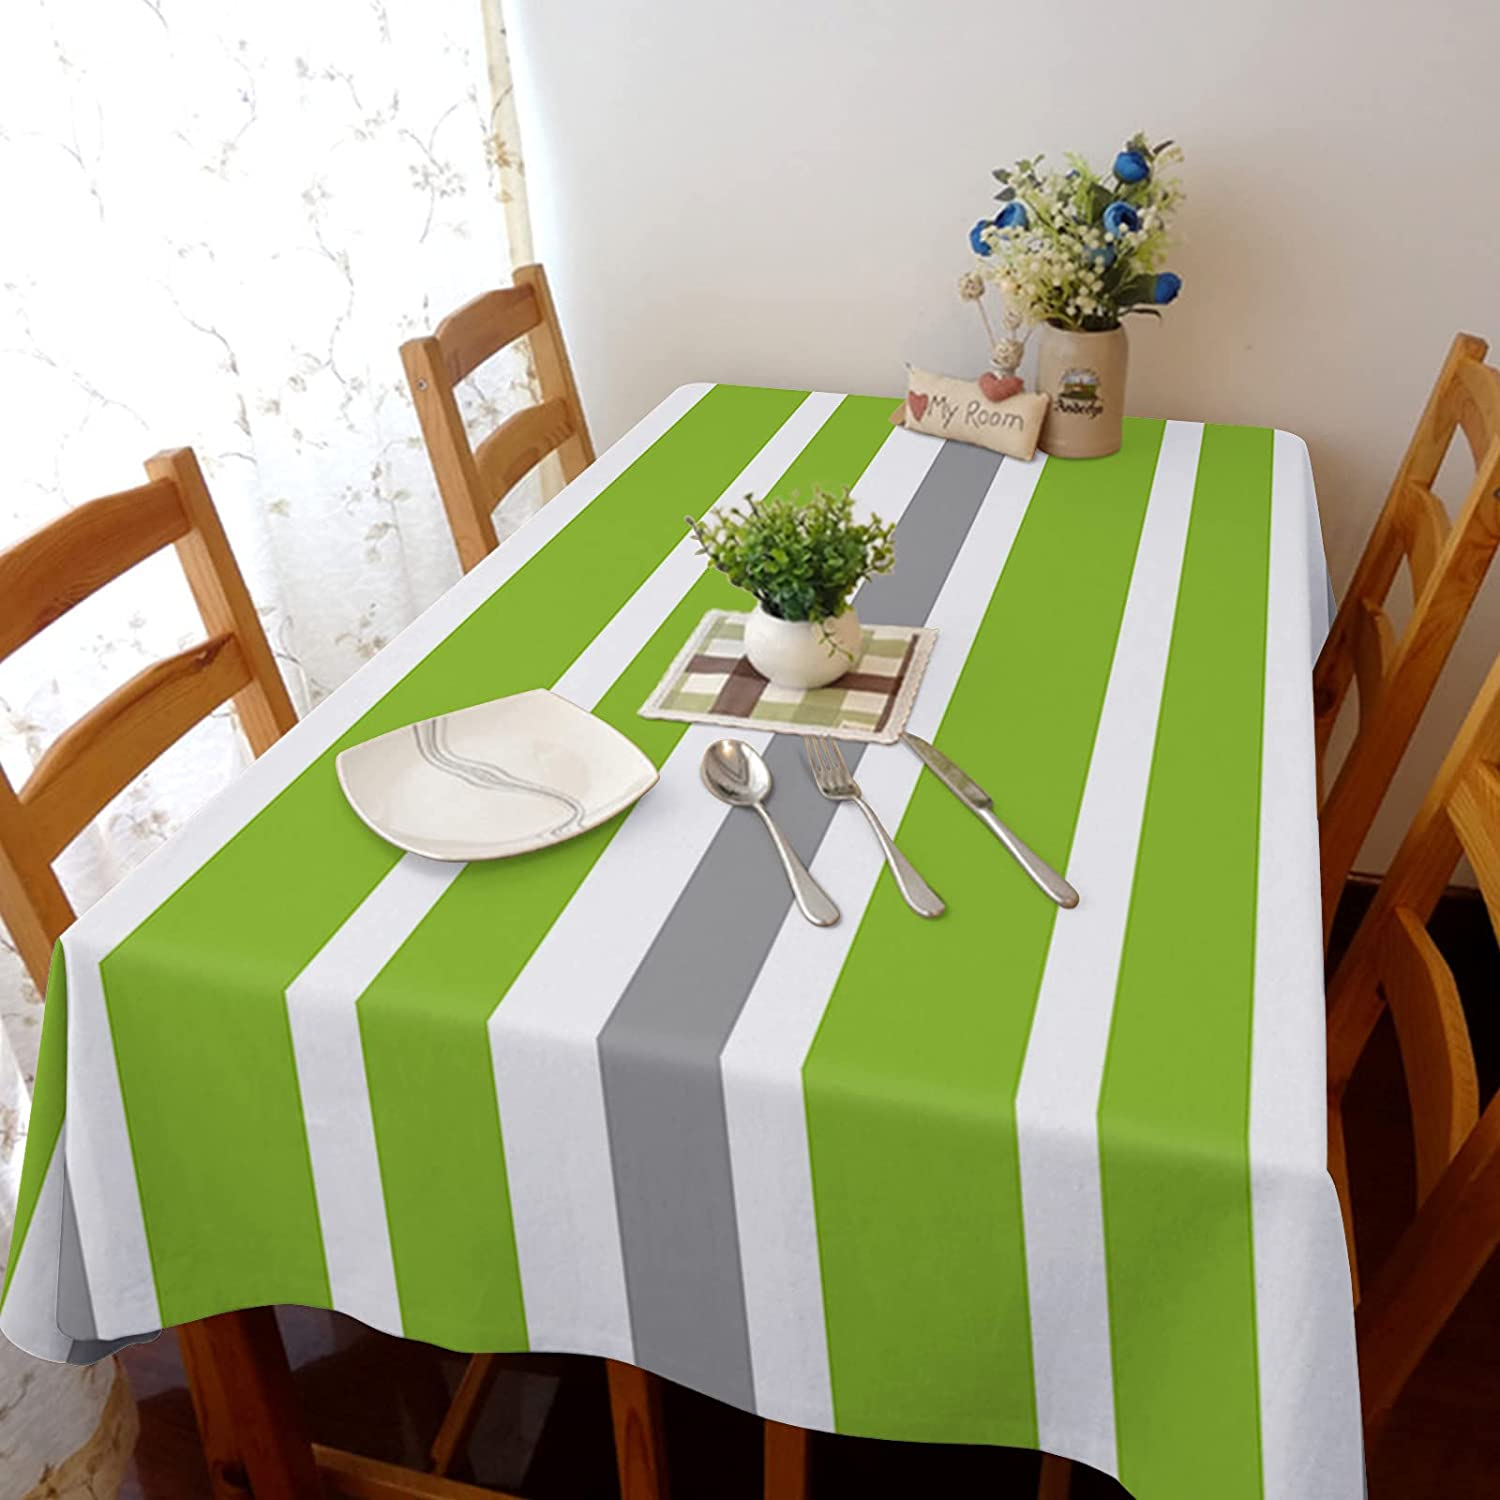 service TH XHome Tablecloth Linen Burlap Weights Whit Gray Fabric Green SALENEW very popular!